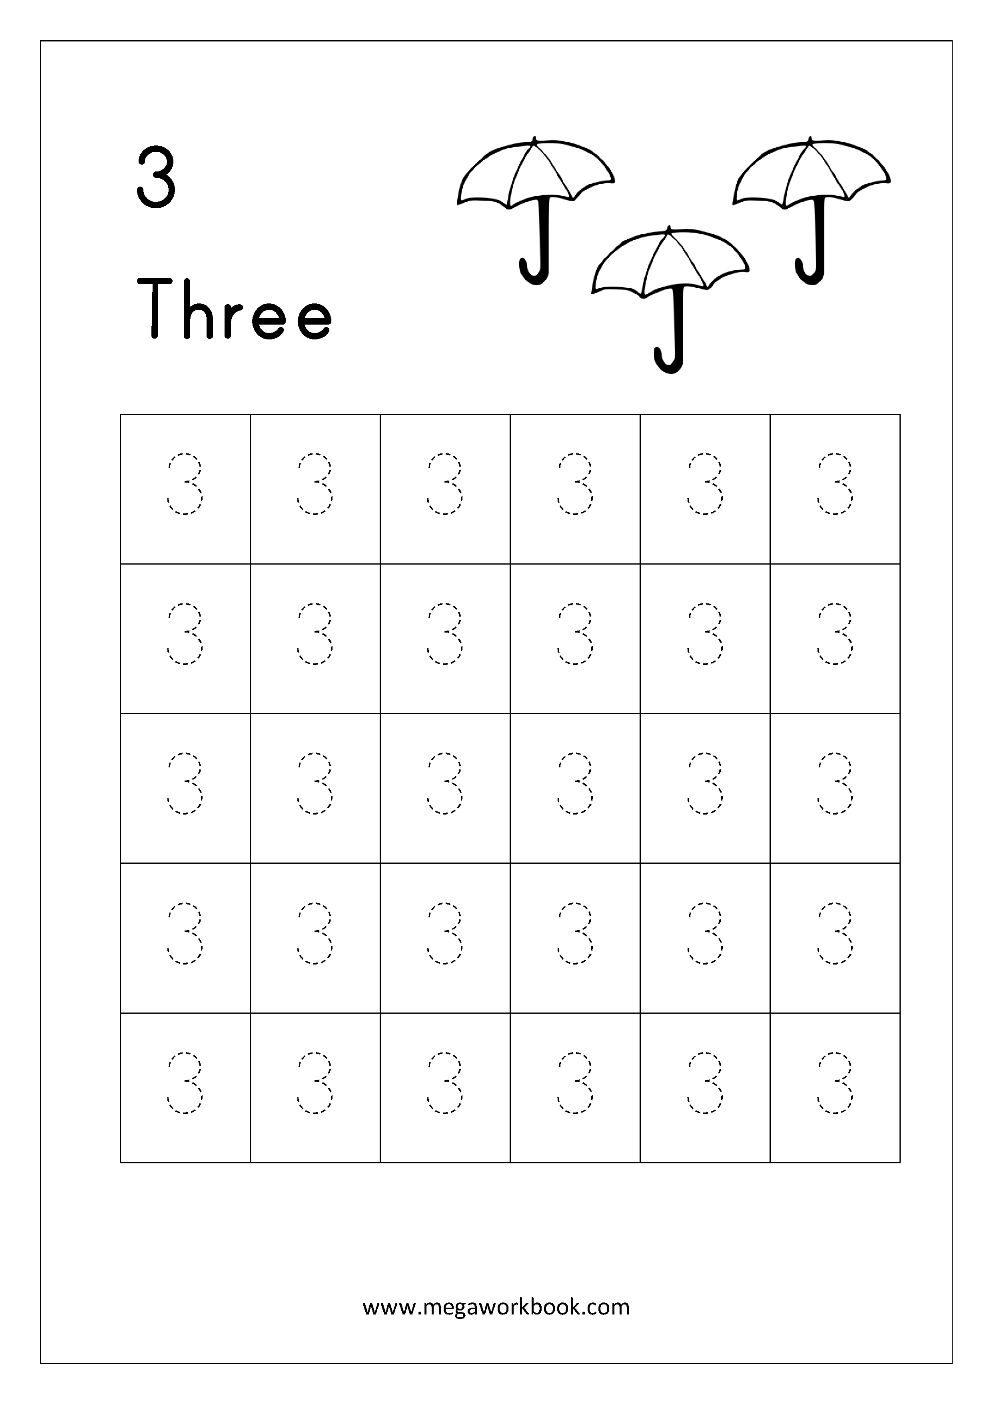 Workbooks trace numbers worksheets : Free Math Worksheets - Number Tracing and Writing - MegaWorkbook